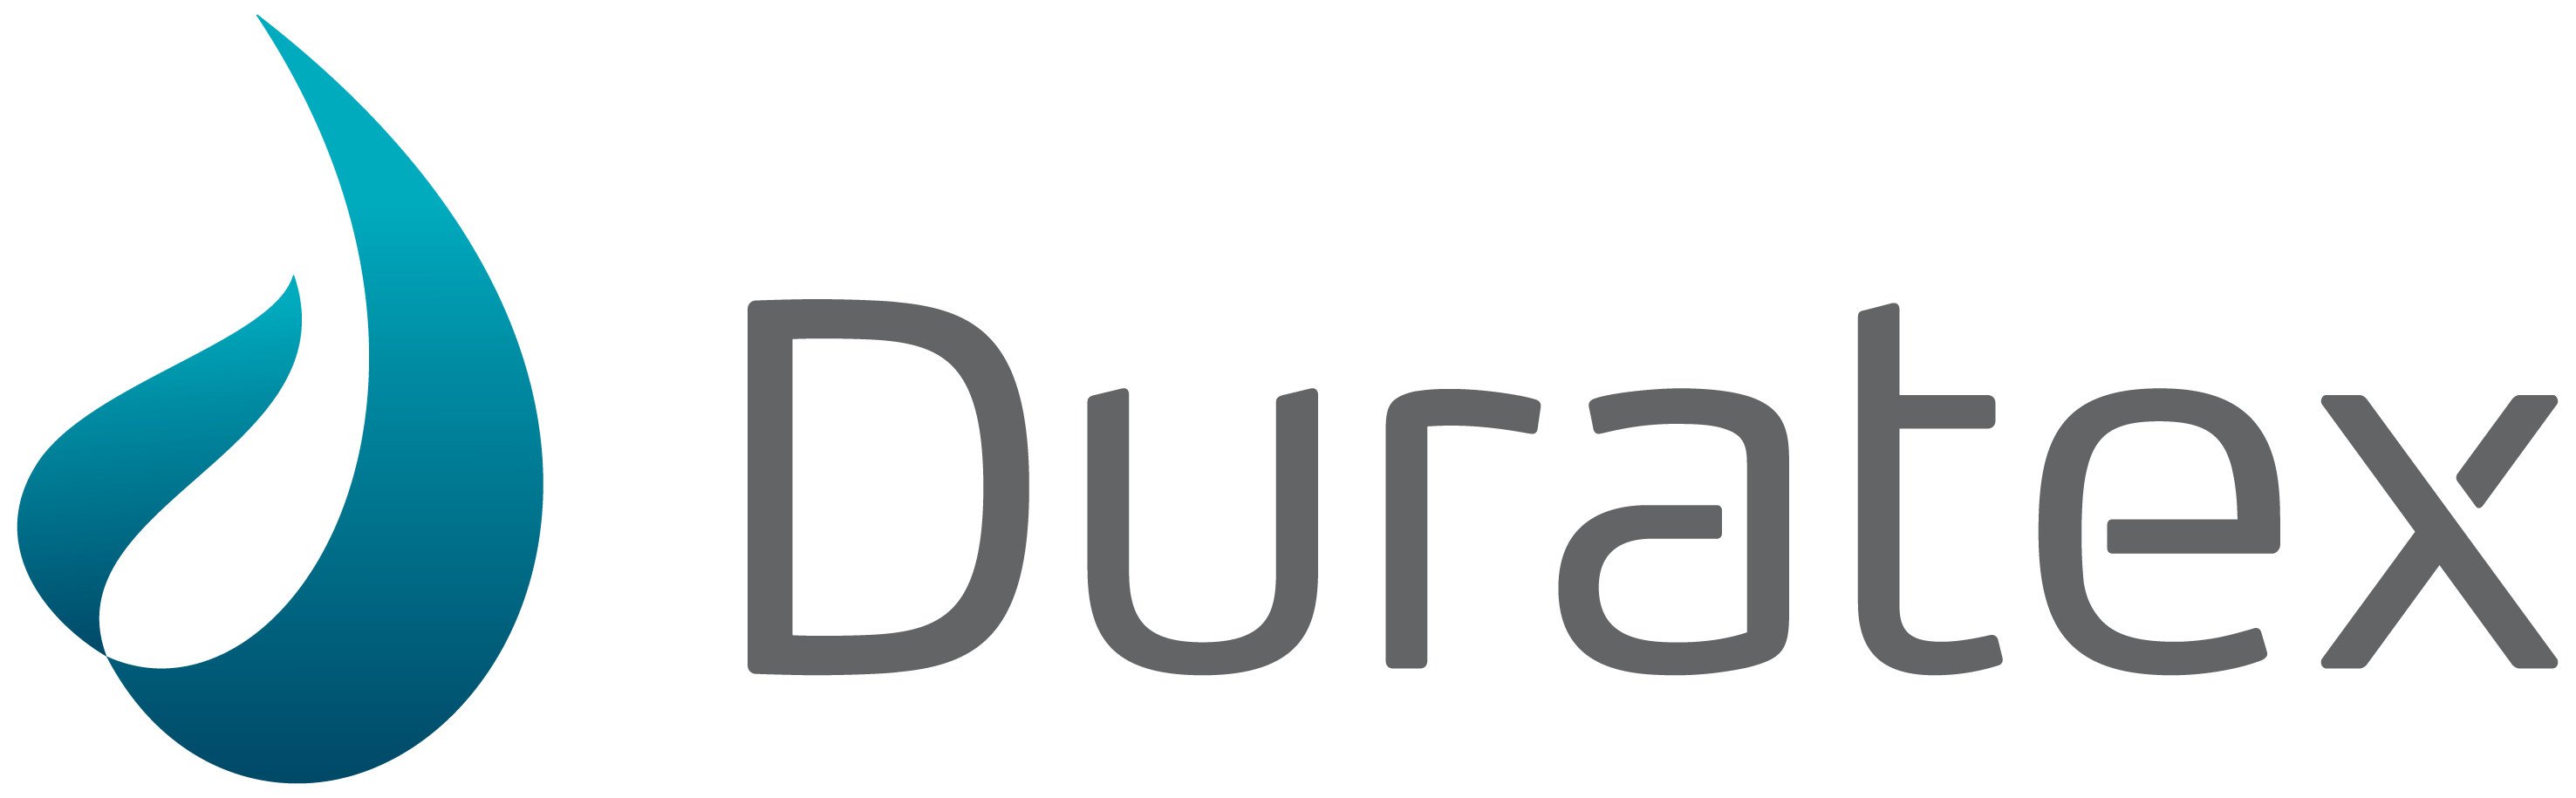 Logo Duratex Corp